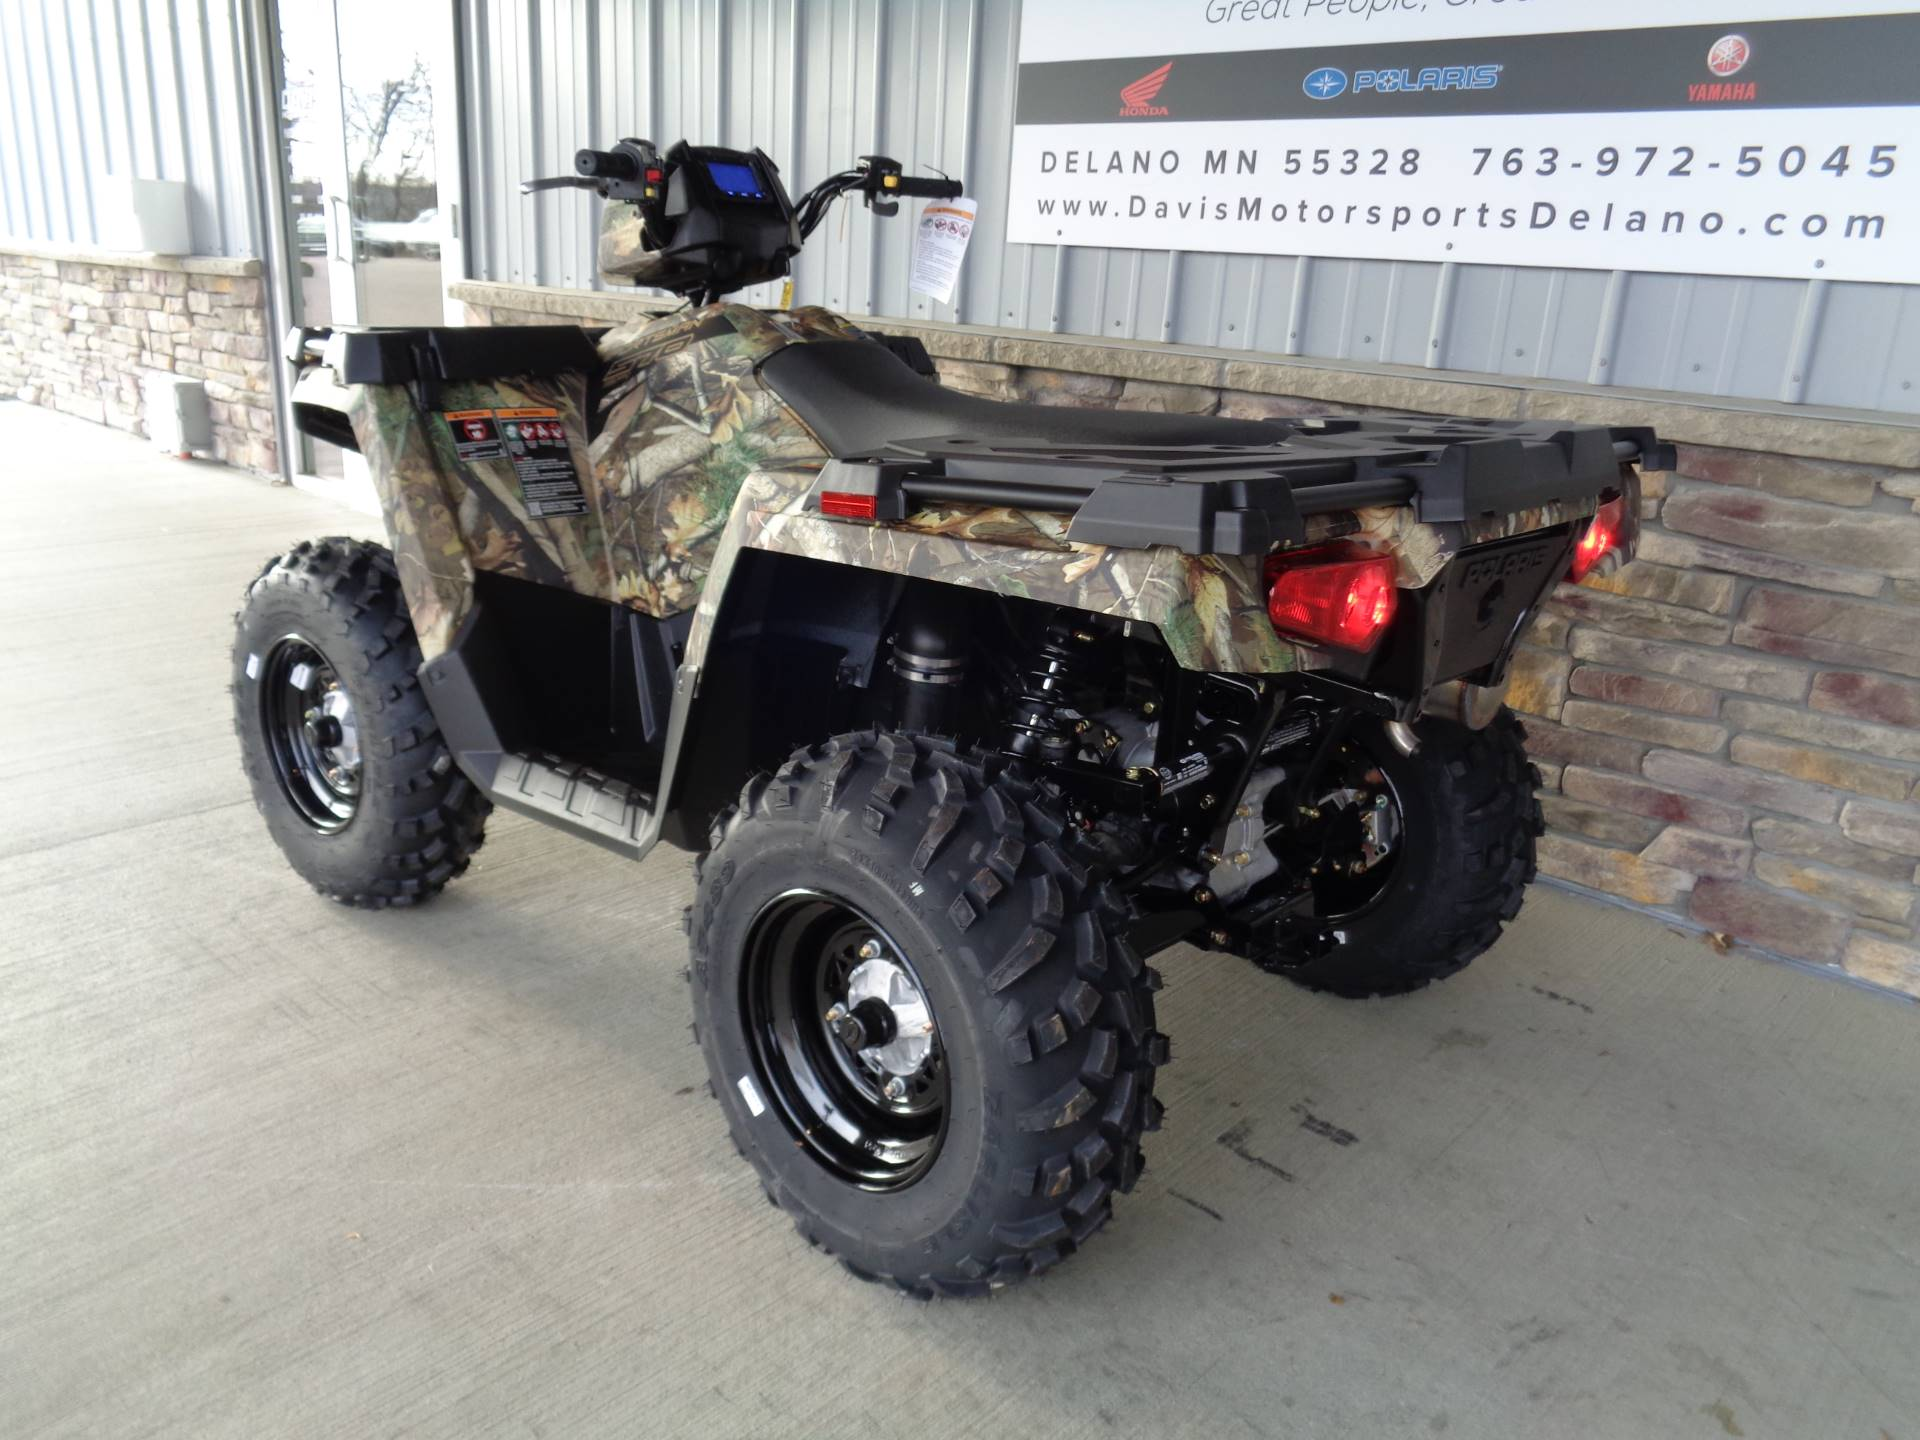 2019 Polaris Sportsman 570 Camo in Delano, Minnesota - Photo 6